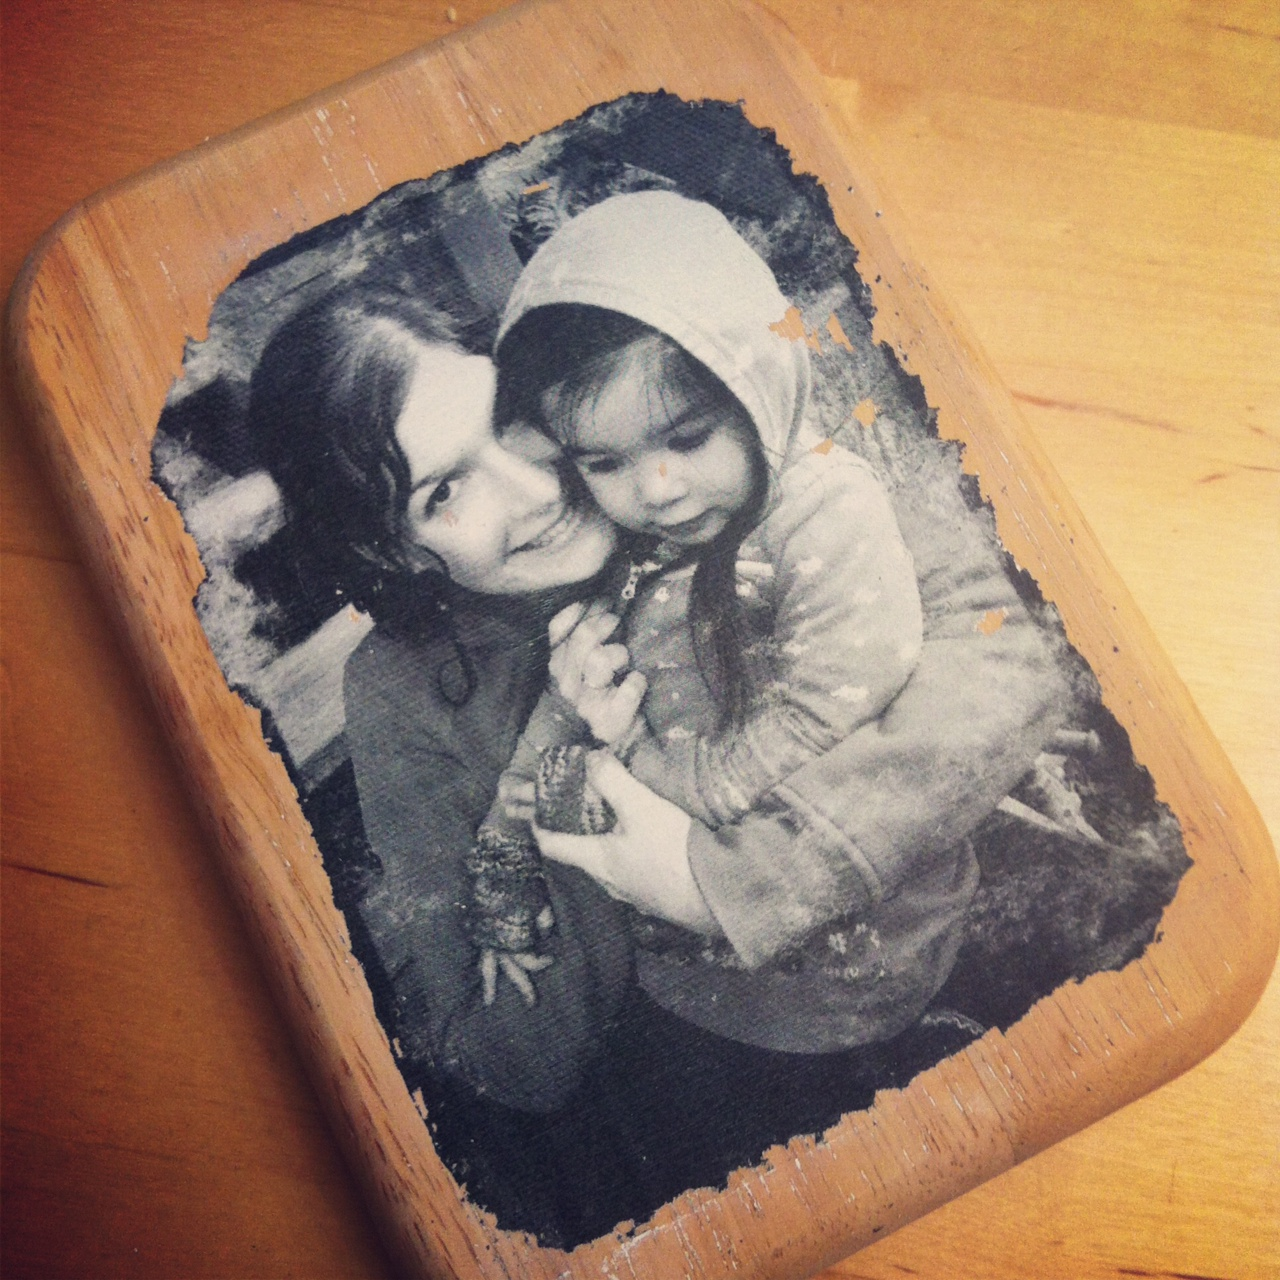 Photo to wood transfer at Sew Creative small